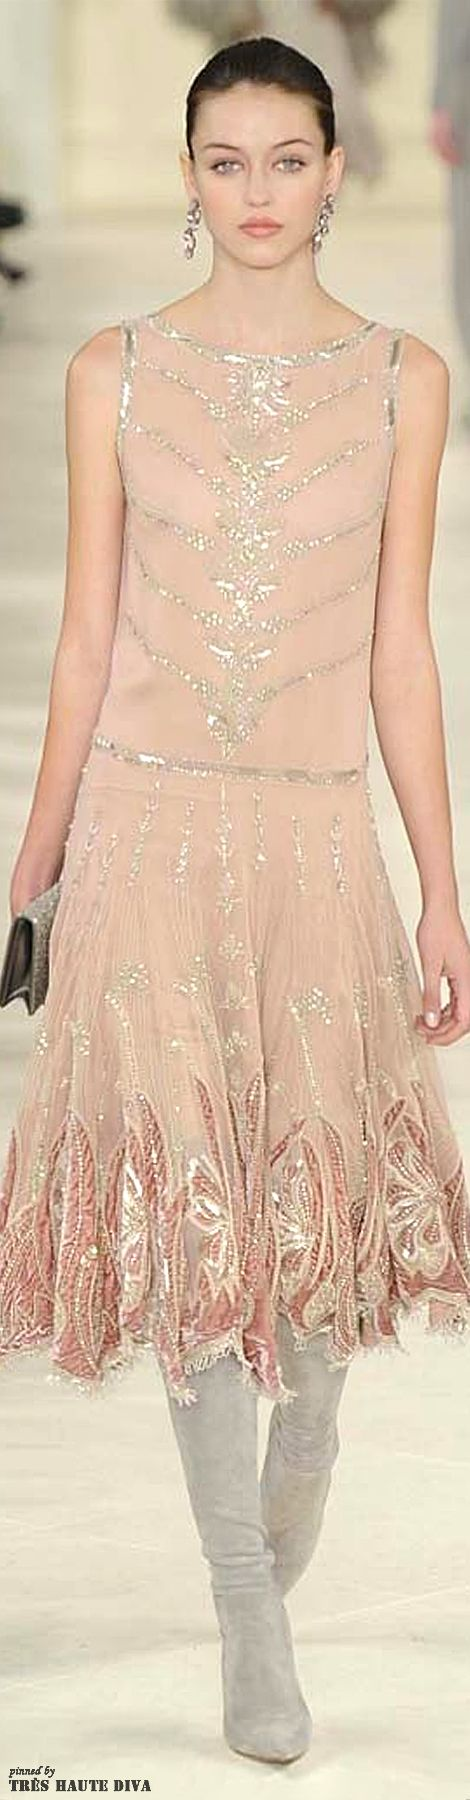 NYFW Ralph Lauren Fall/Winter 2014 Love this dress it's soooo beautiful!